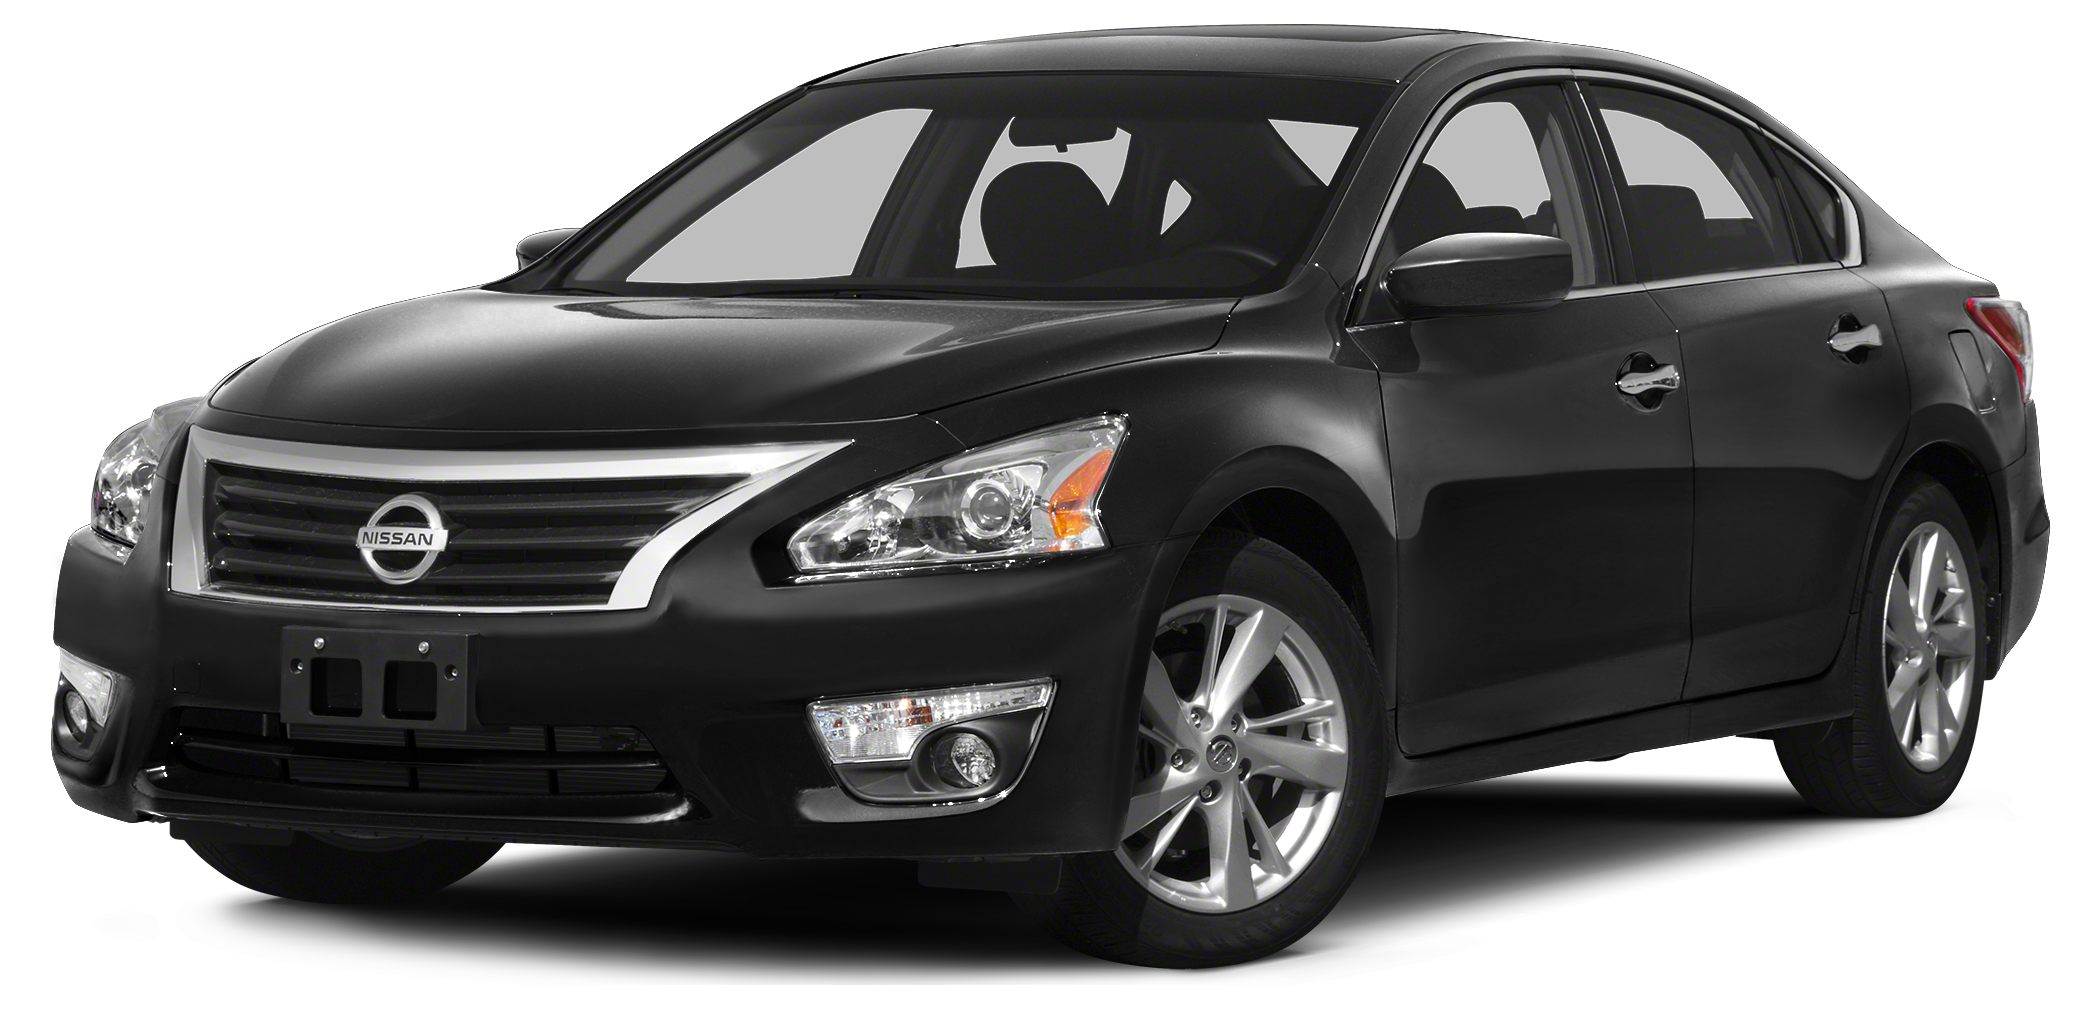 2013 Nissan Altima 25 SV Visit Best Auto Group online at bronxbestautocom to see more pictures o